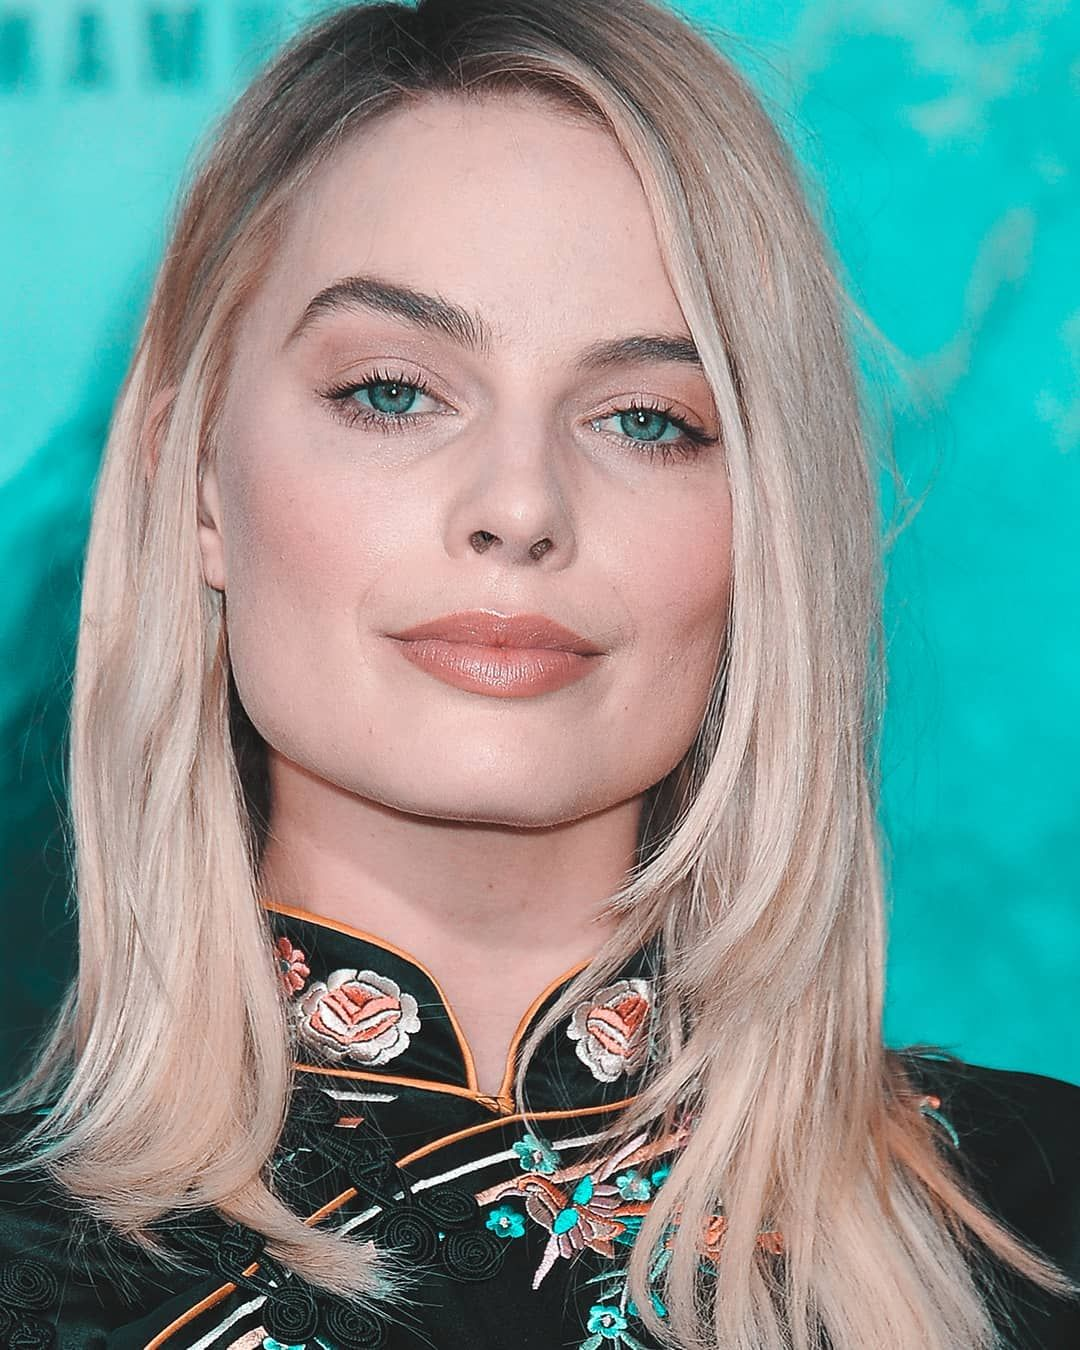 Pin by felfox on durau pinterest margot robbie actresses and